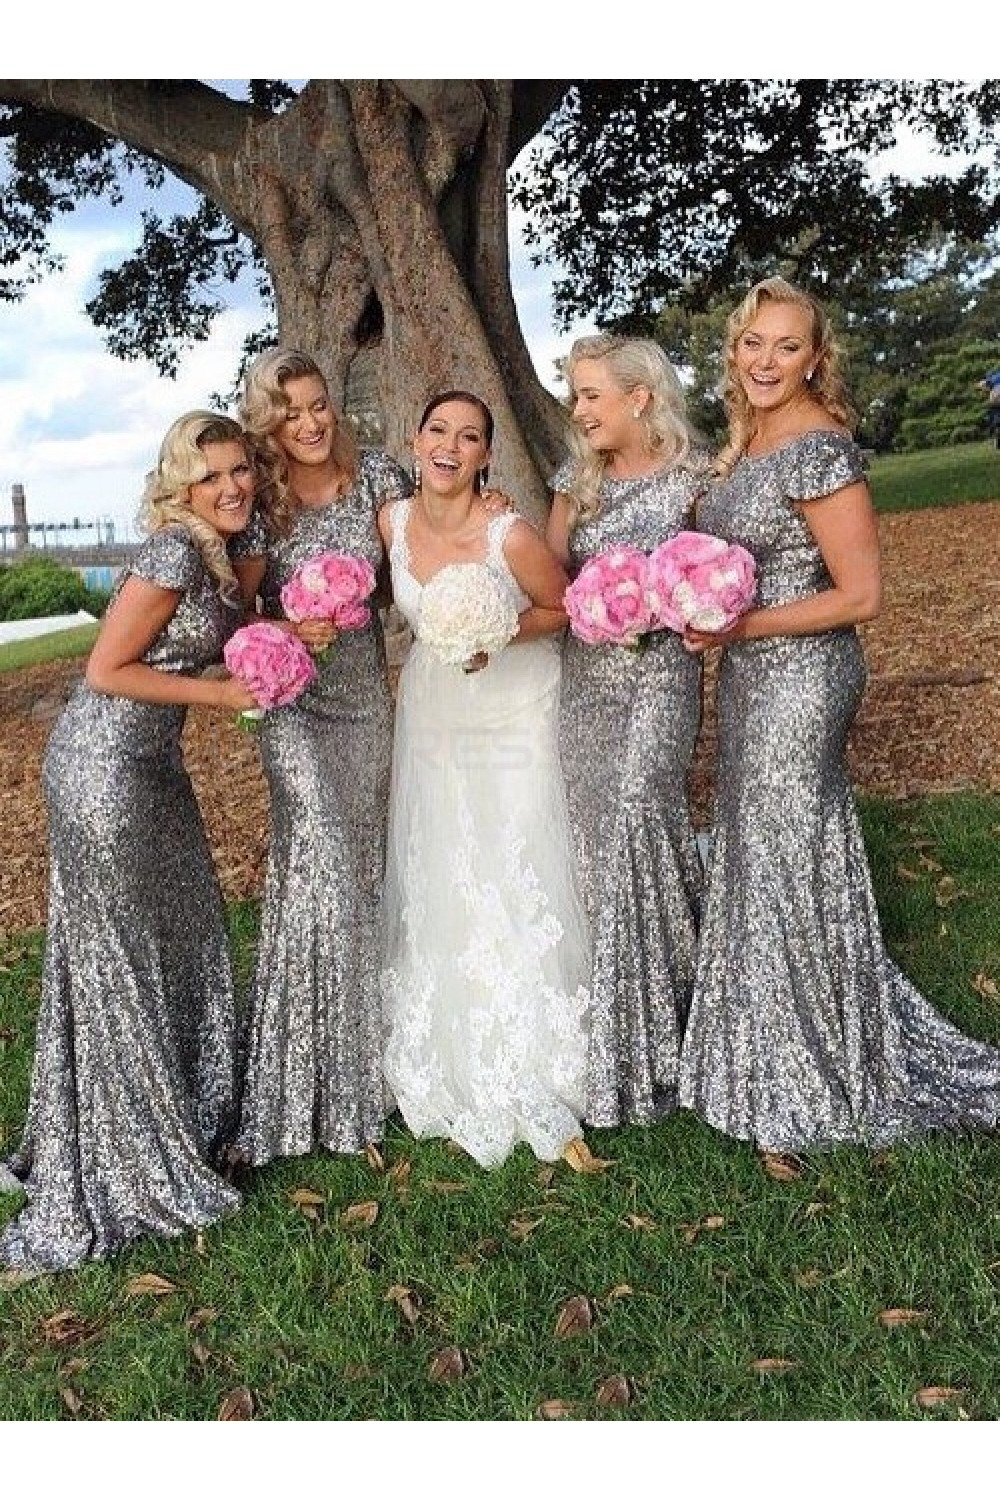 Sequins cap sleeves silver long bridesmaid dresses 3010001 latest sequins cap sleeves silver long bridesmaid dresses 3010001 ombrellifo Image collections